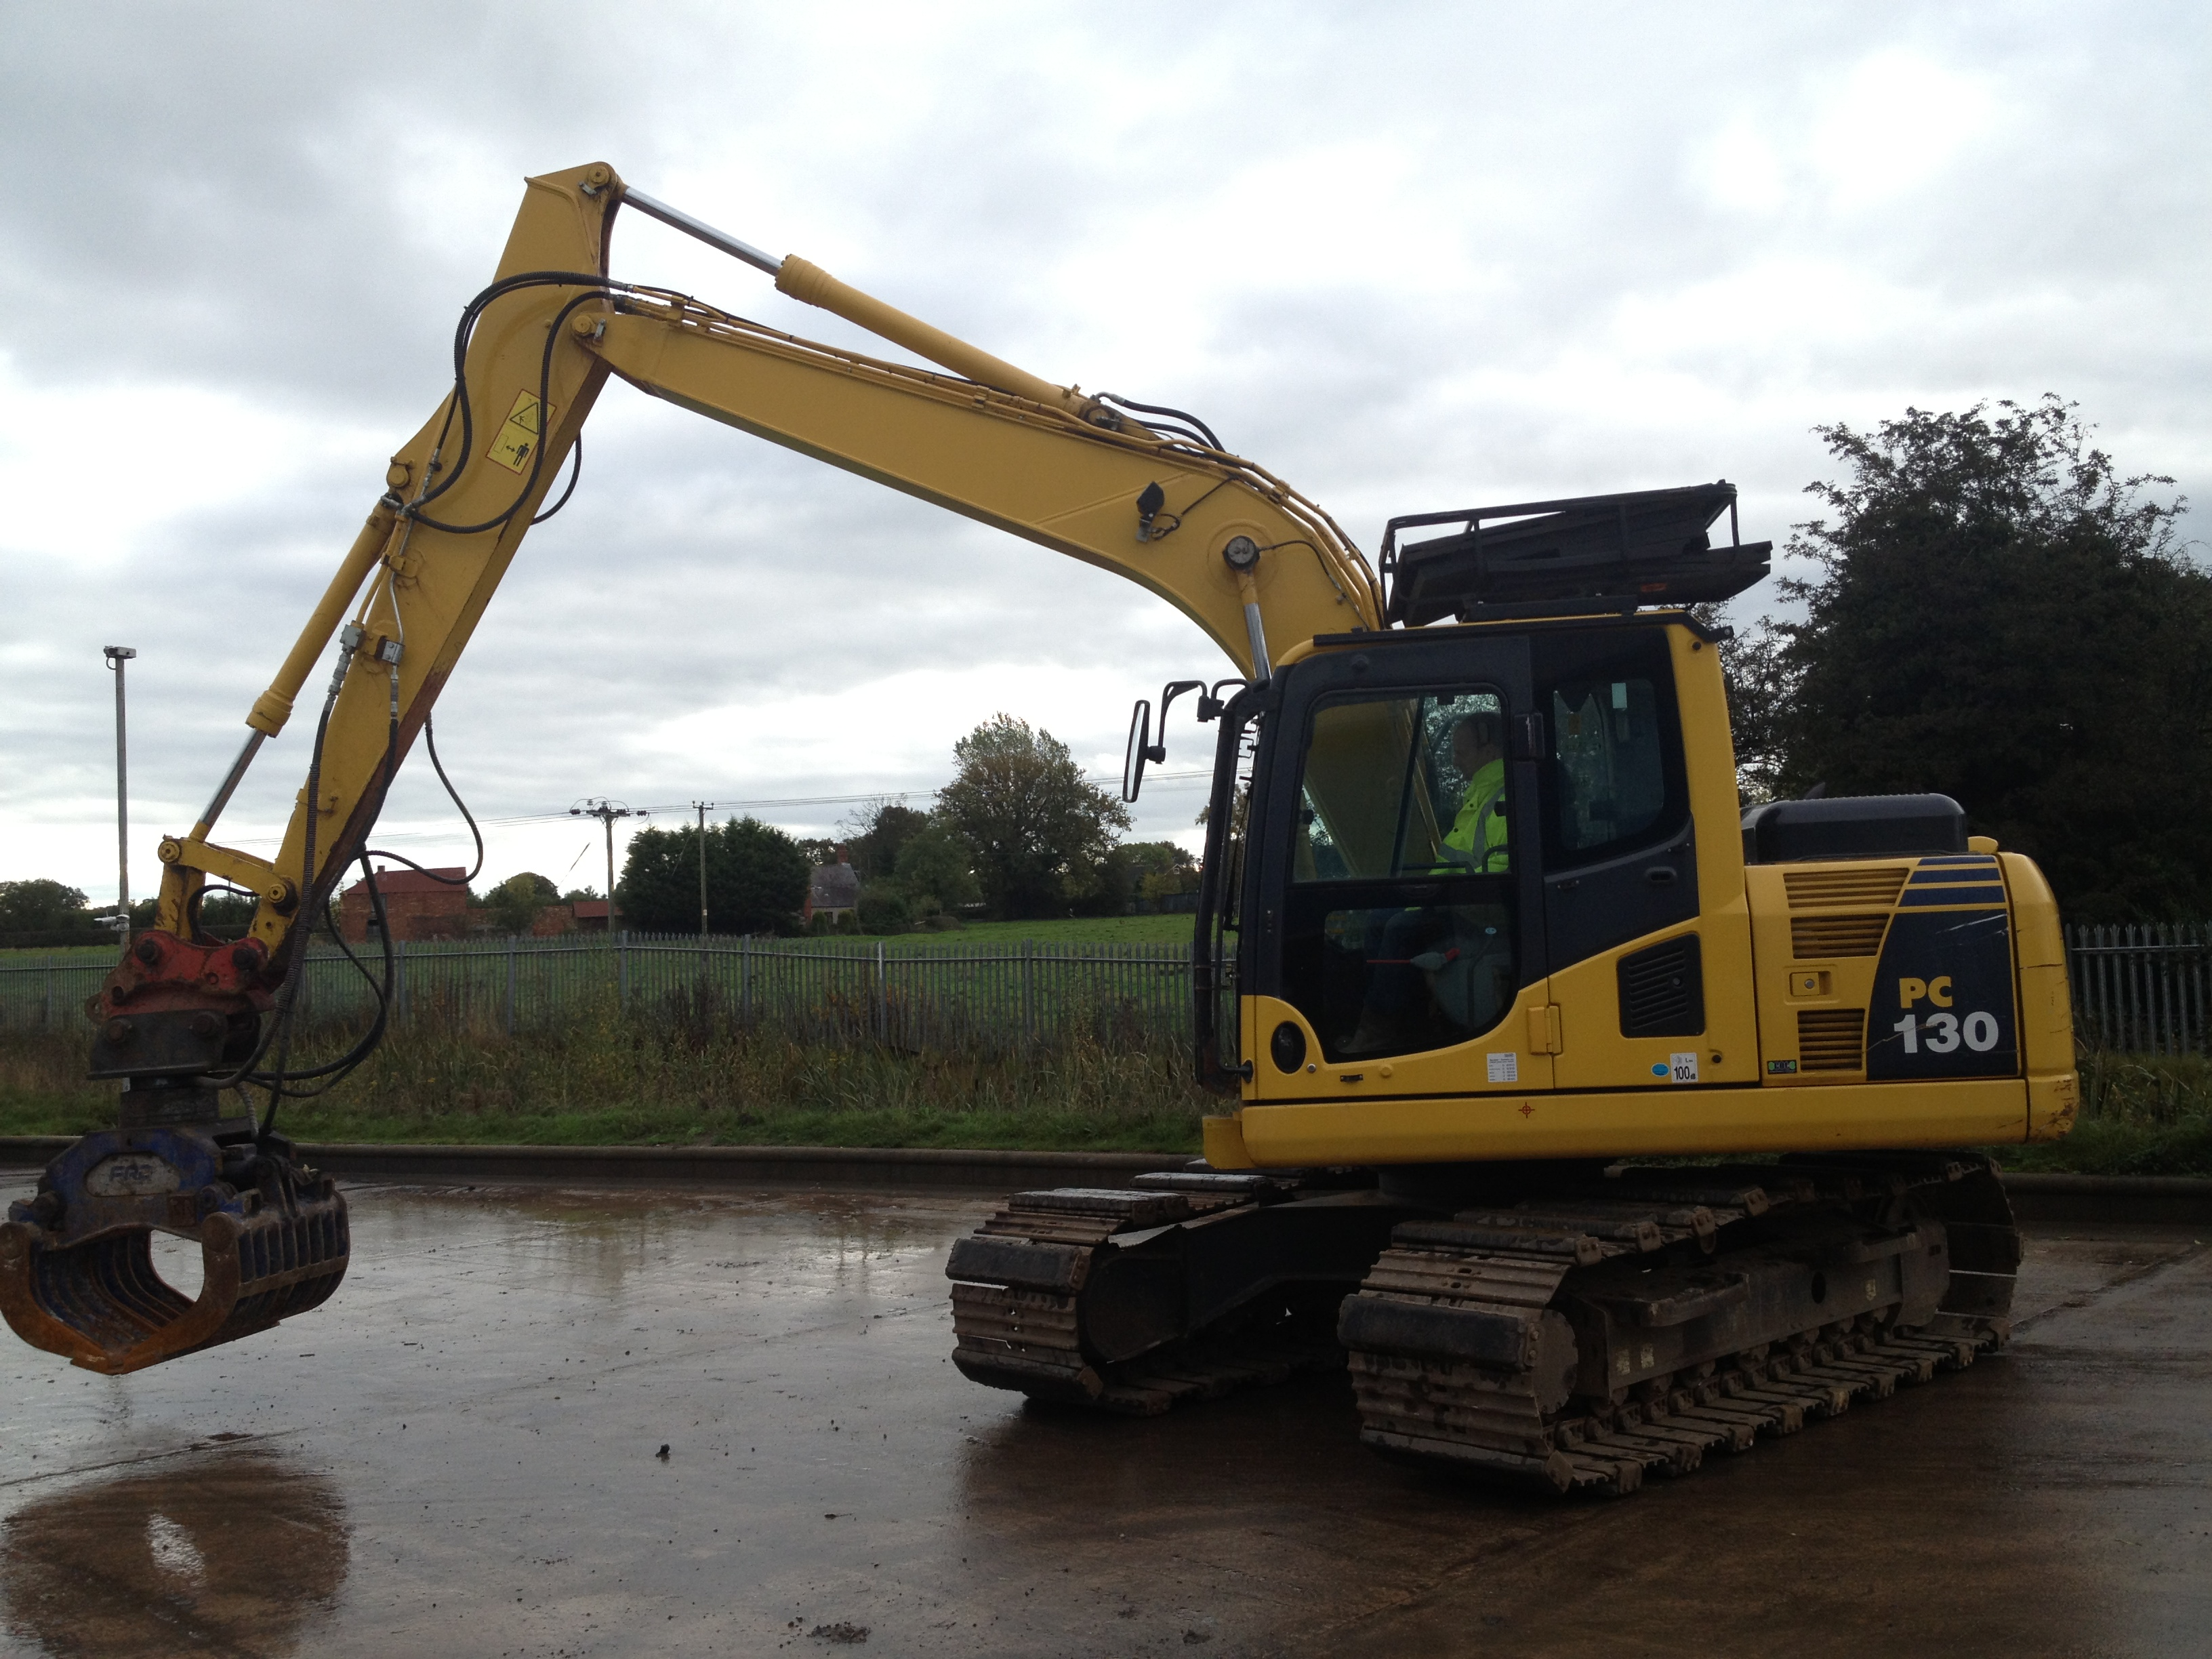 wheel machinery excavator backhoe rental balavto rent and equipment construction com volvo